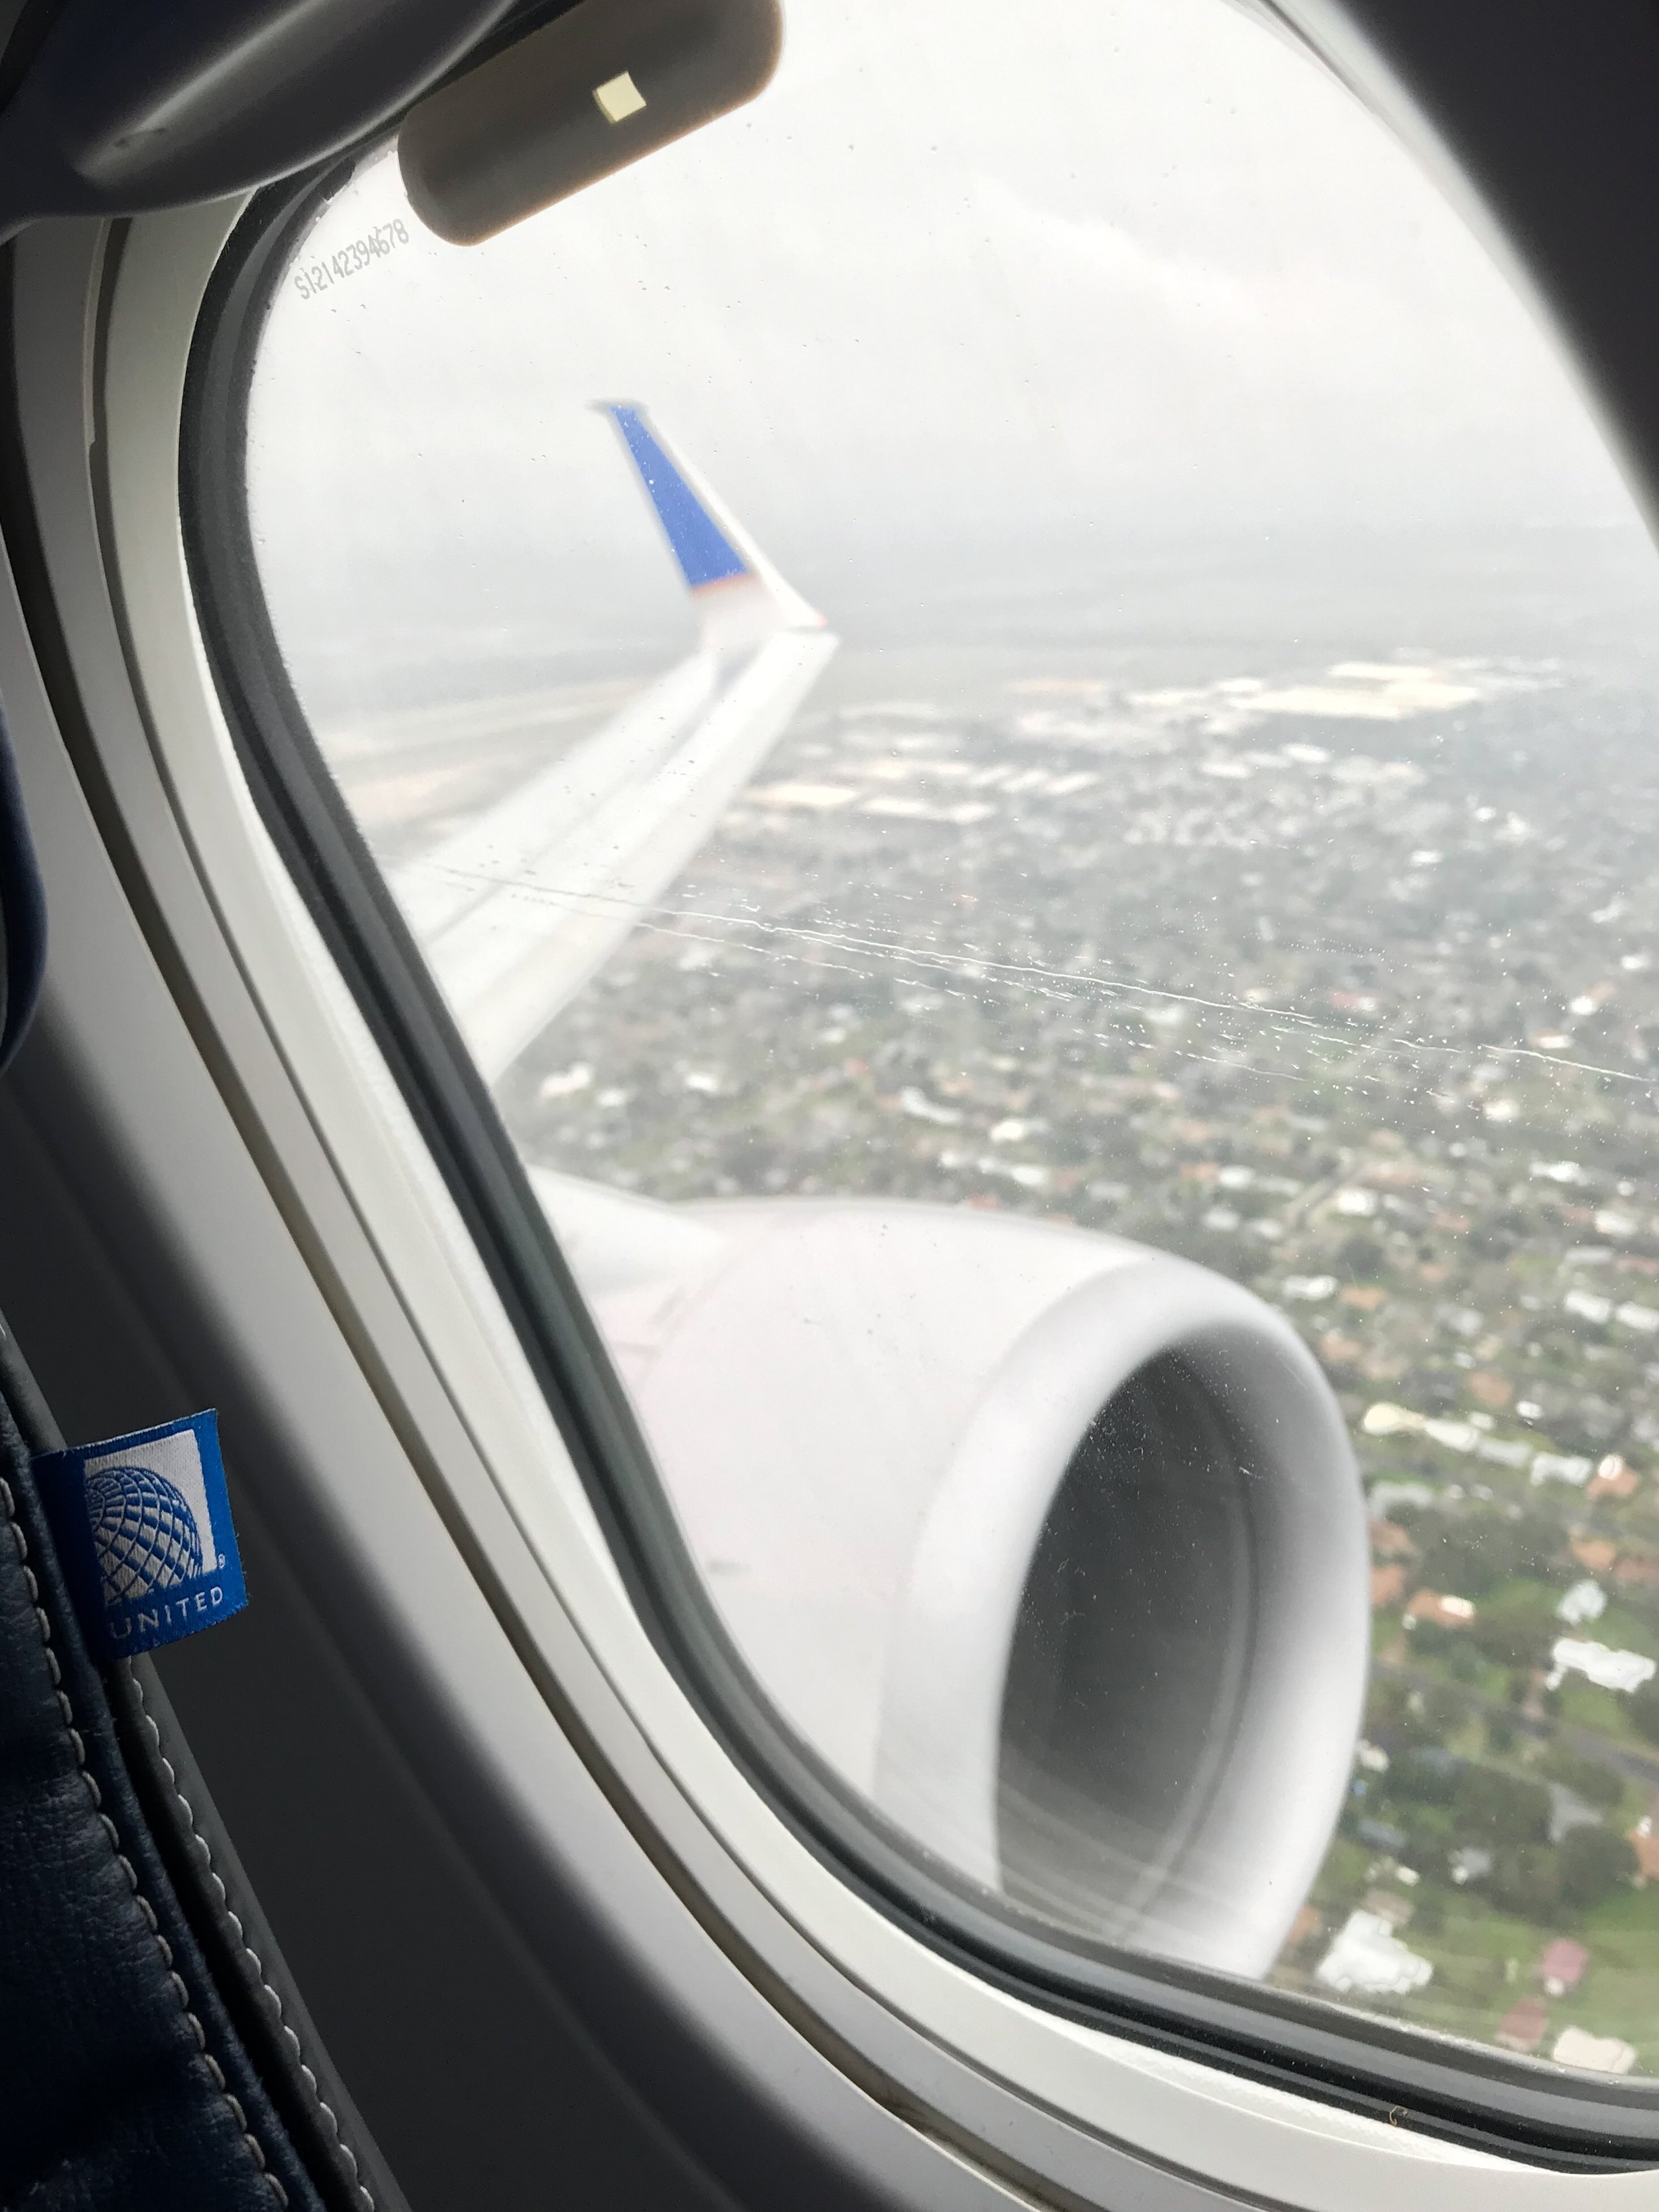 Climbing out of San Antonio. The United tag on the seat is a nice touch.